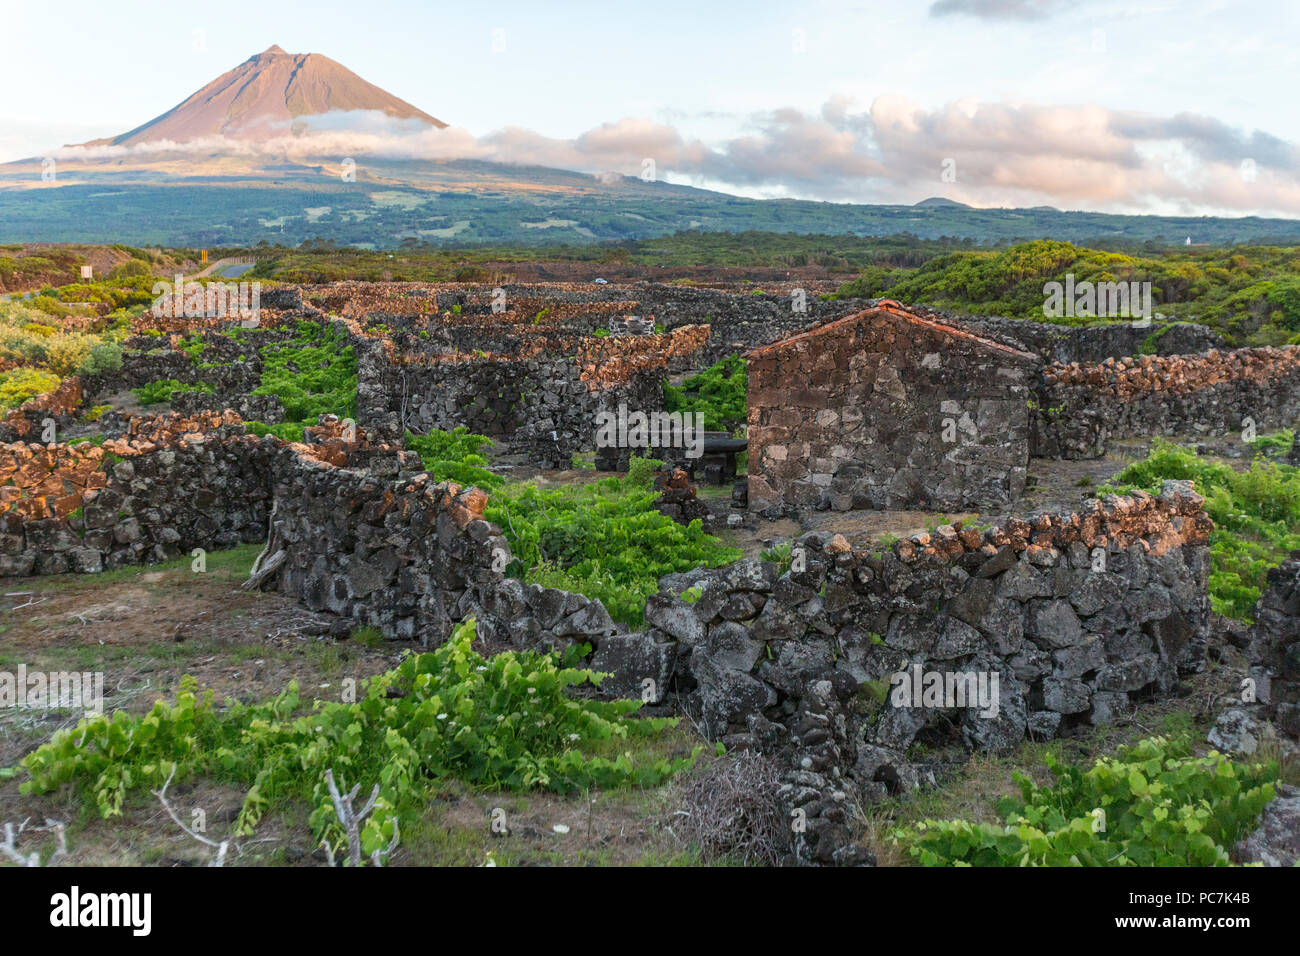 The silhouette of the Mount Pico, overlooking the hedge rows dividing the vineyards of Pico Island, Azores, Portugal Stock Photo